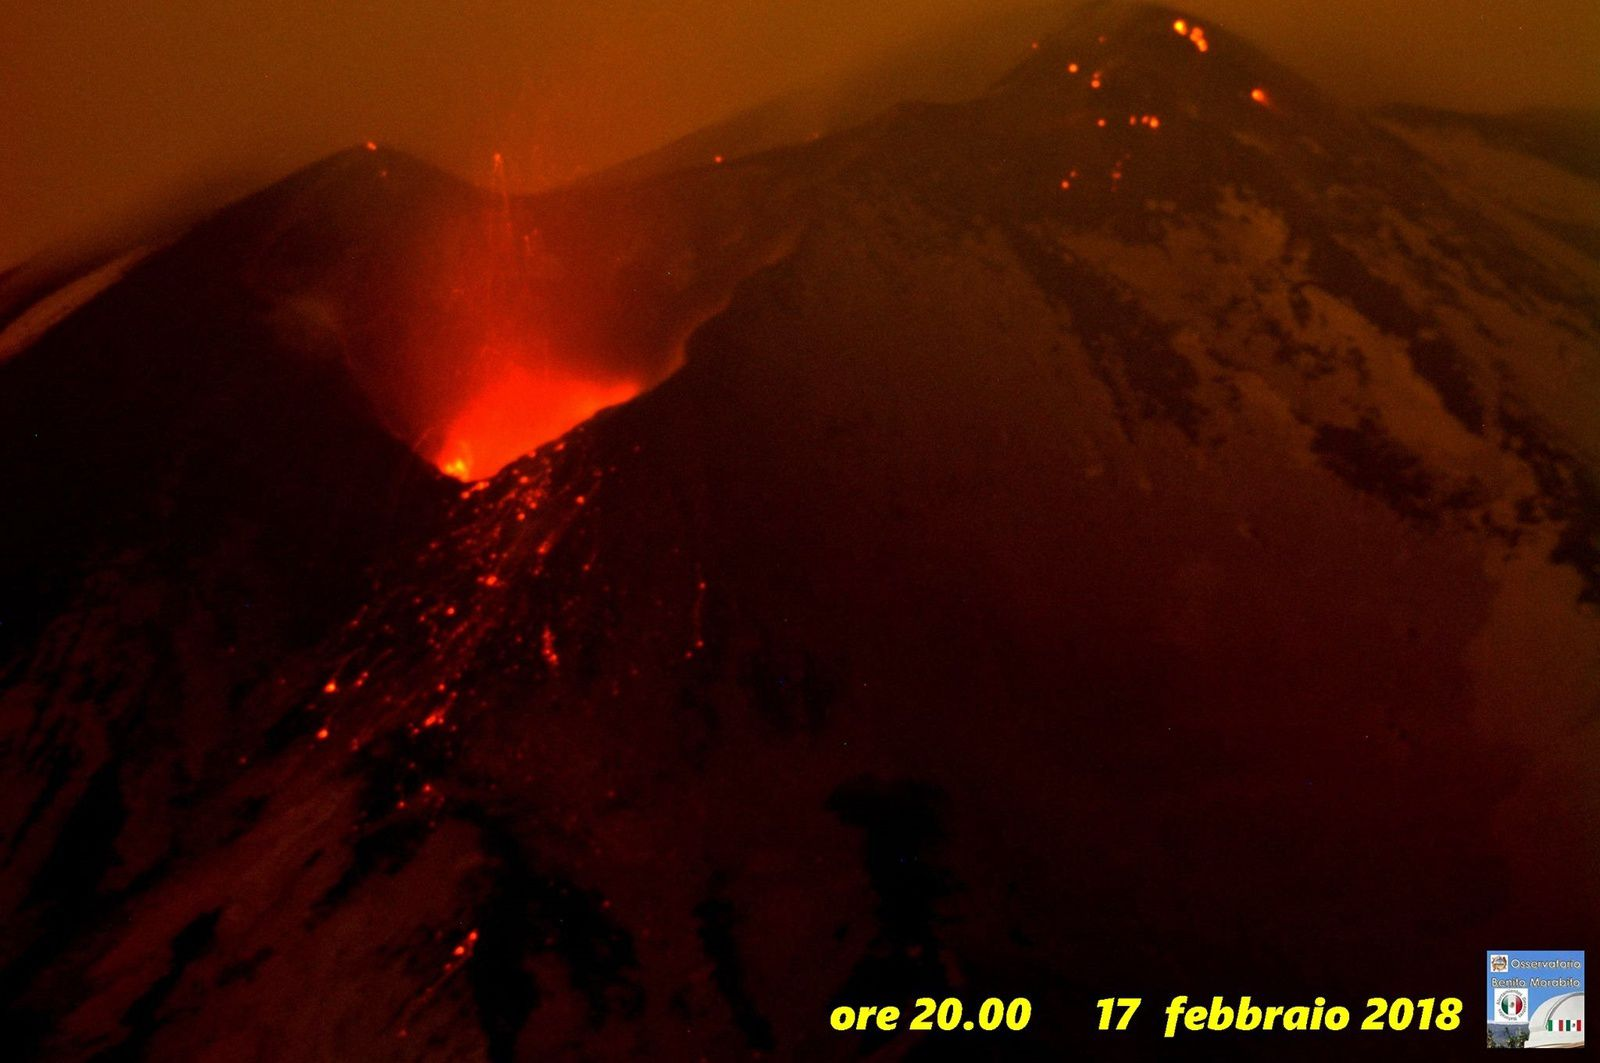 Etna - incandescent and projection of incandescent materials - photo B.Morabito 17.02.2018 / 20h